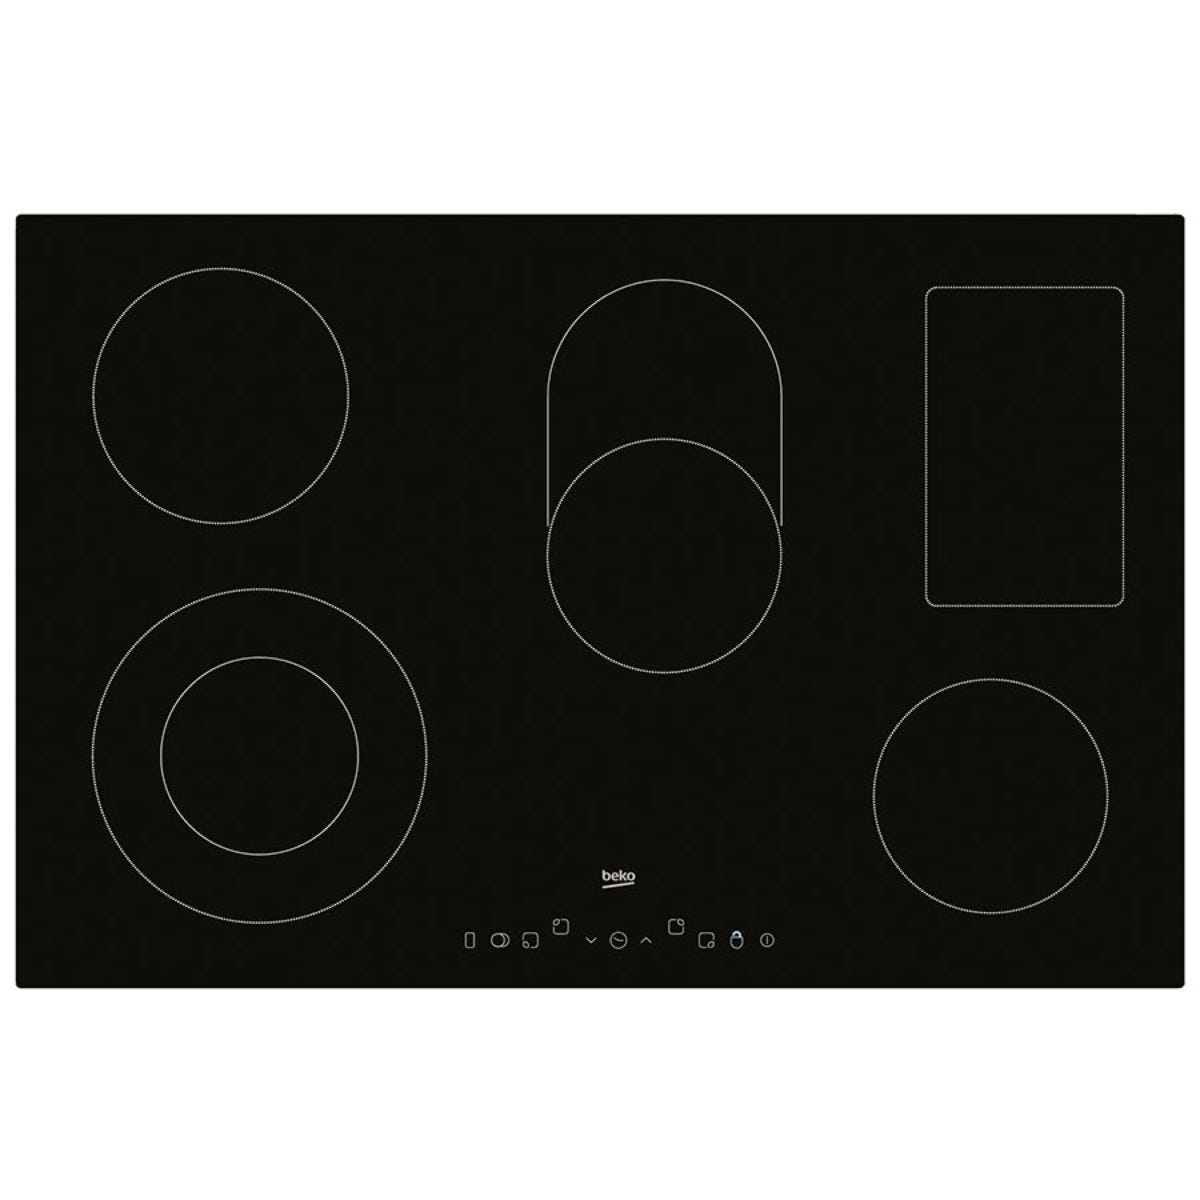 Beko HIC85402T Electric Hob with Touch Control - Black